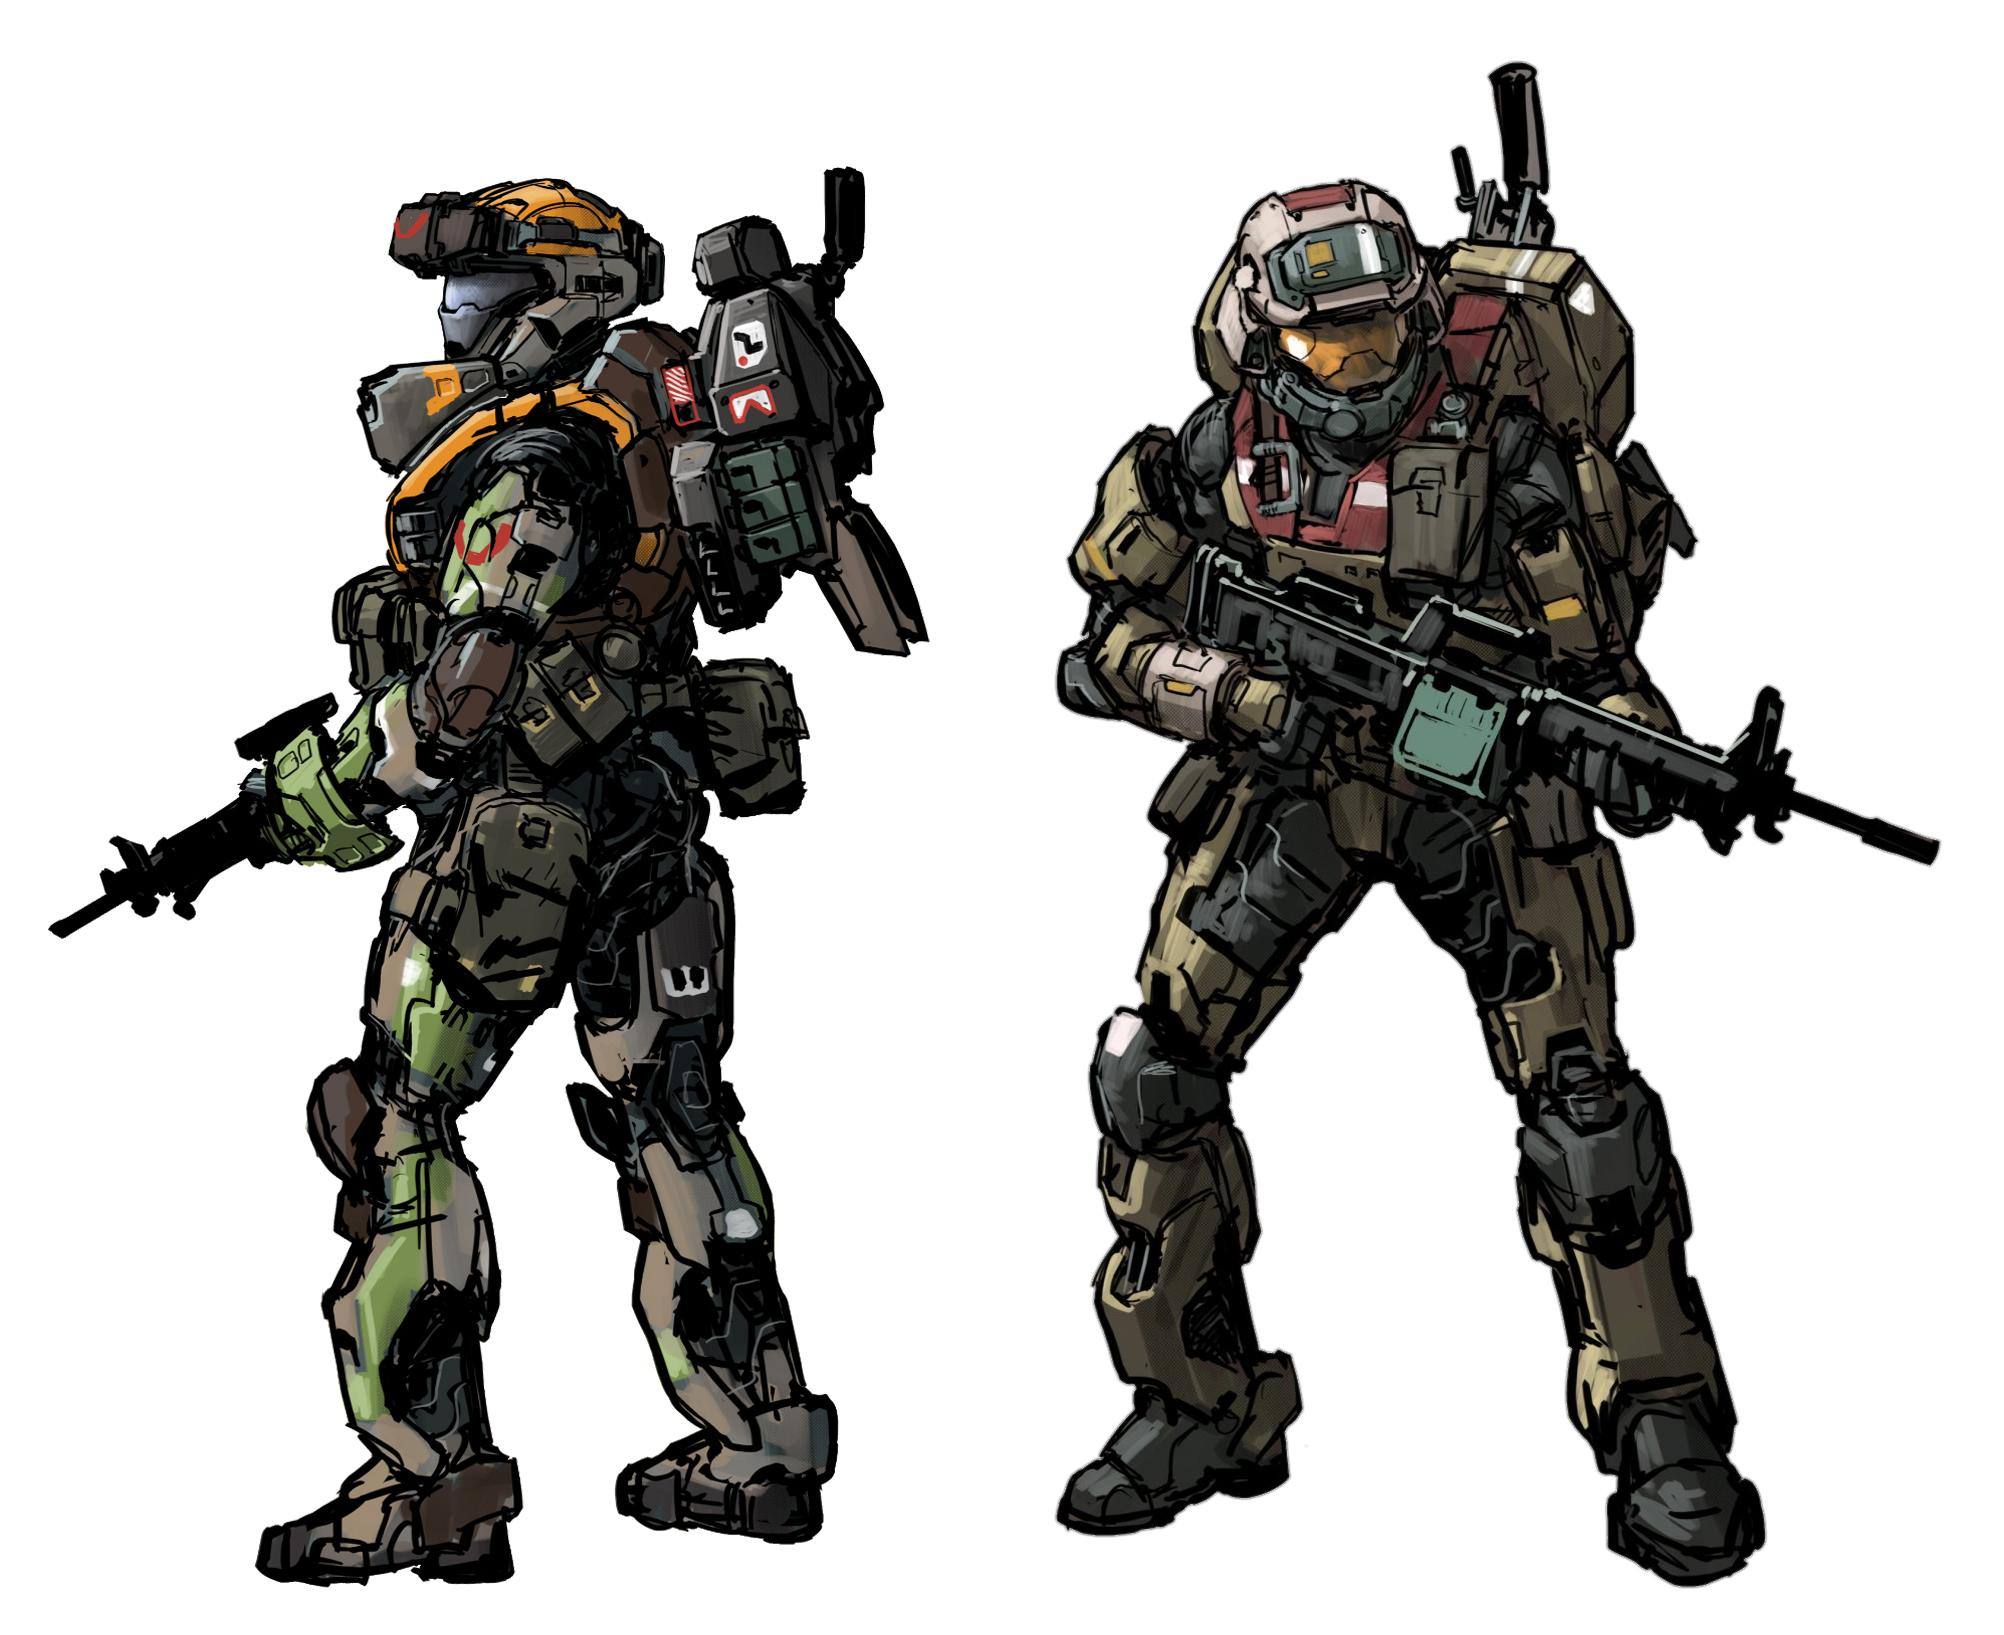 2004x1635 What Are The Odds Halo Has A More Militaristic Style Like Reach